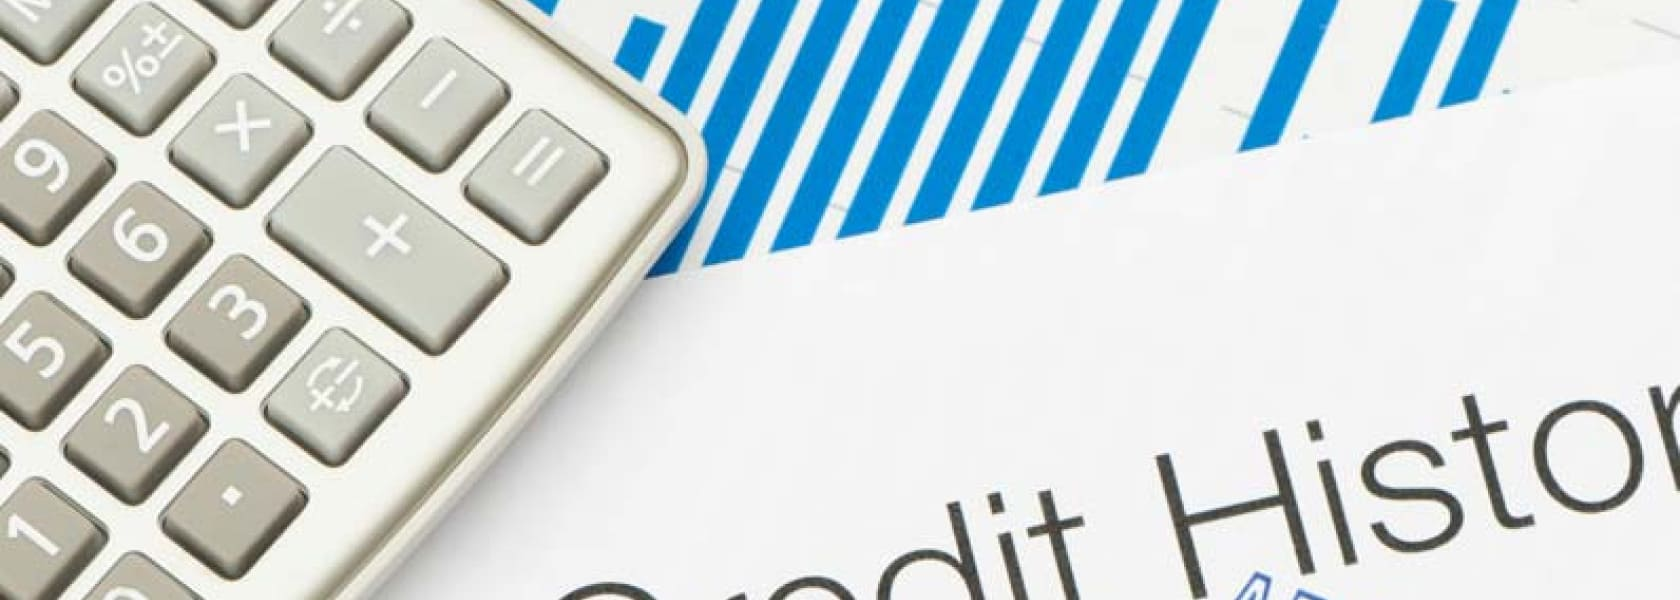 Lending & Credit History image